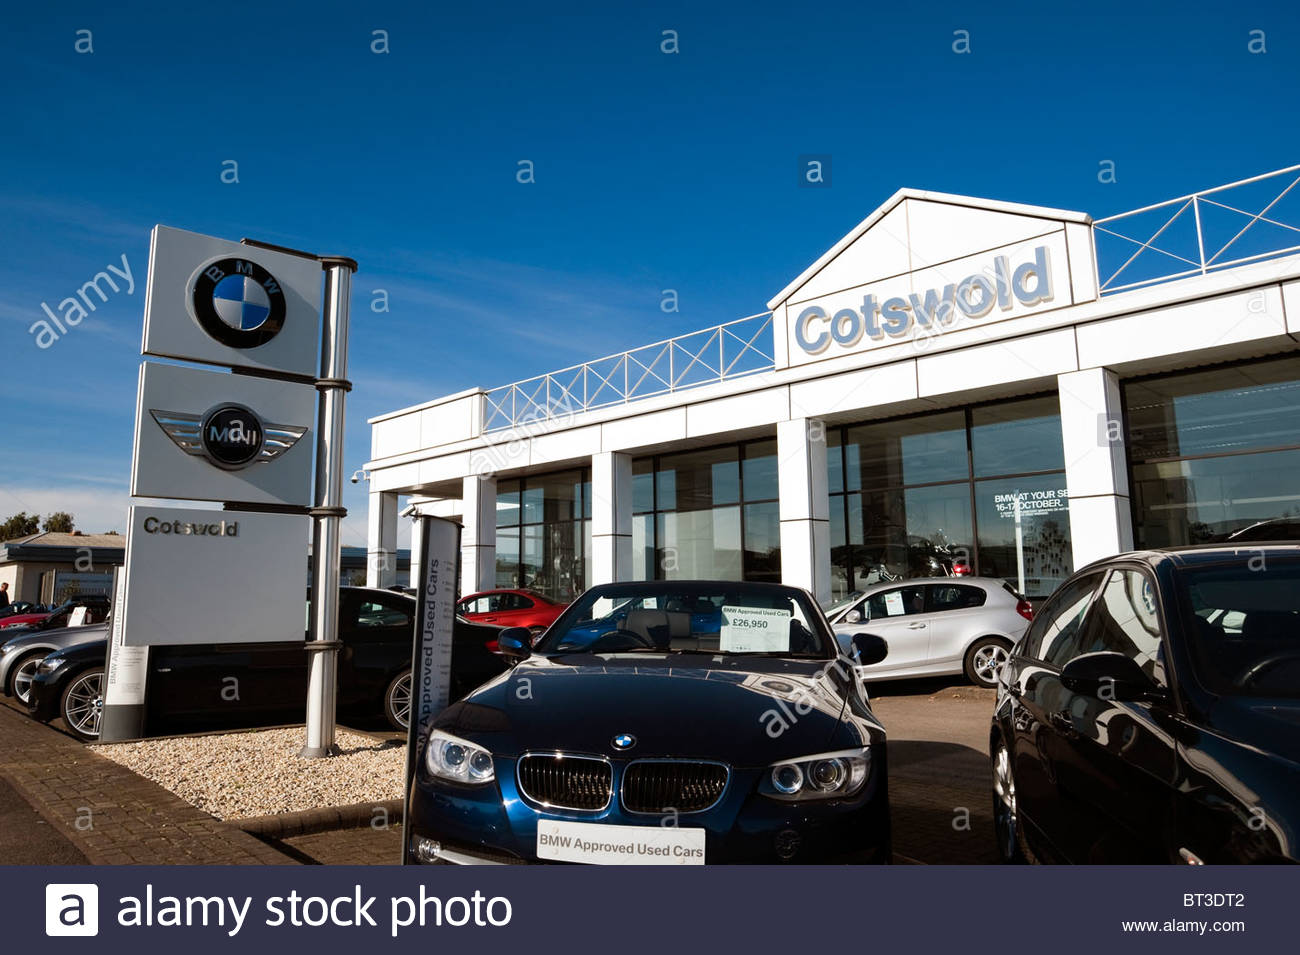 Bmw mini cotswold car dealership in cheltenham uk used for Garage bmw gard